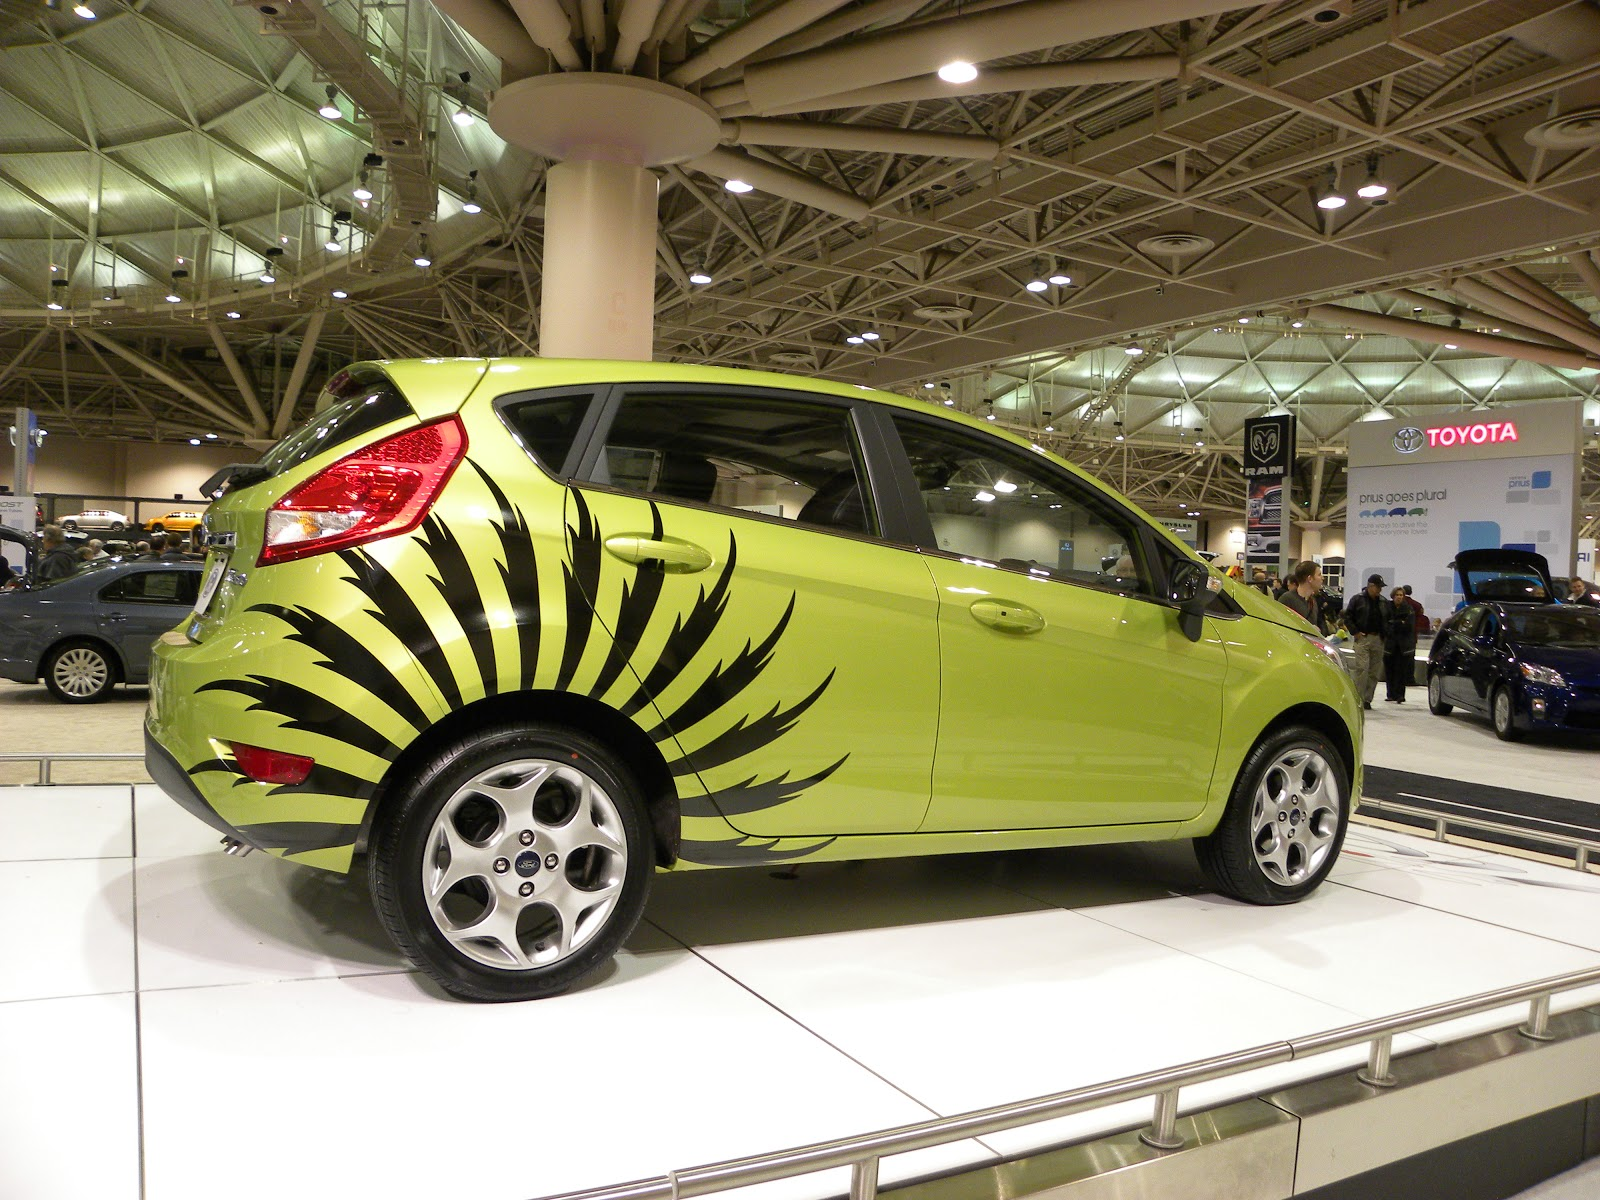 Car design sticker stripes - Yesterday S Post Featured A Car With Le Mans Racing Stripes So I Thought Today We D Have Ourselves A Little Exploration Into All These Stripes And Decals